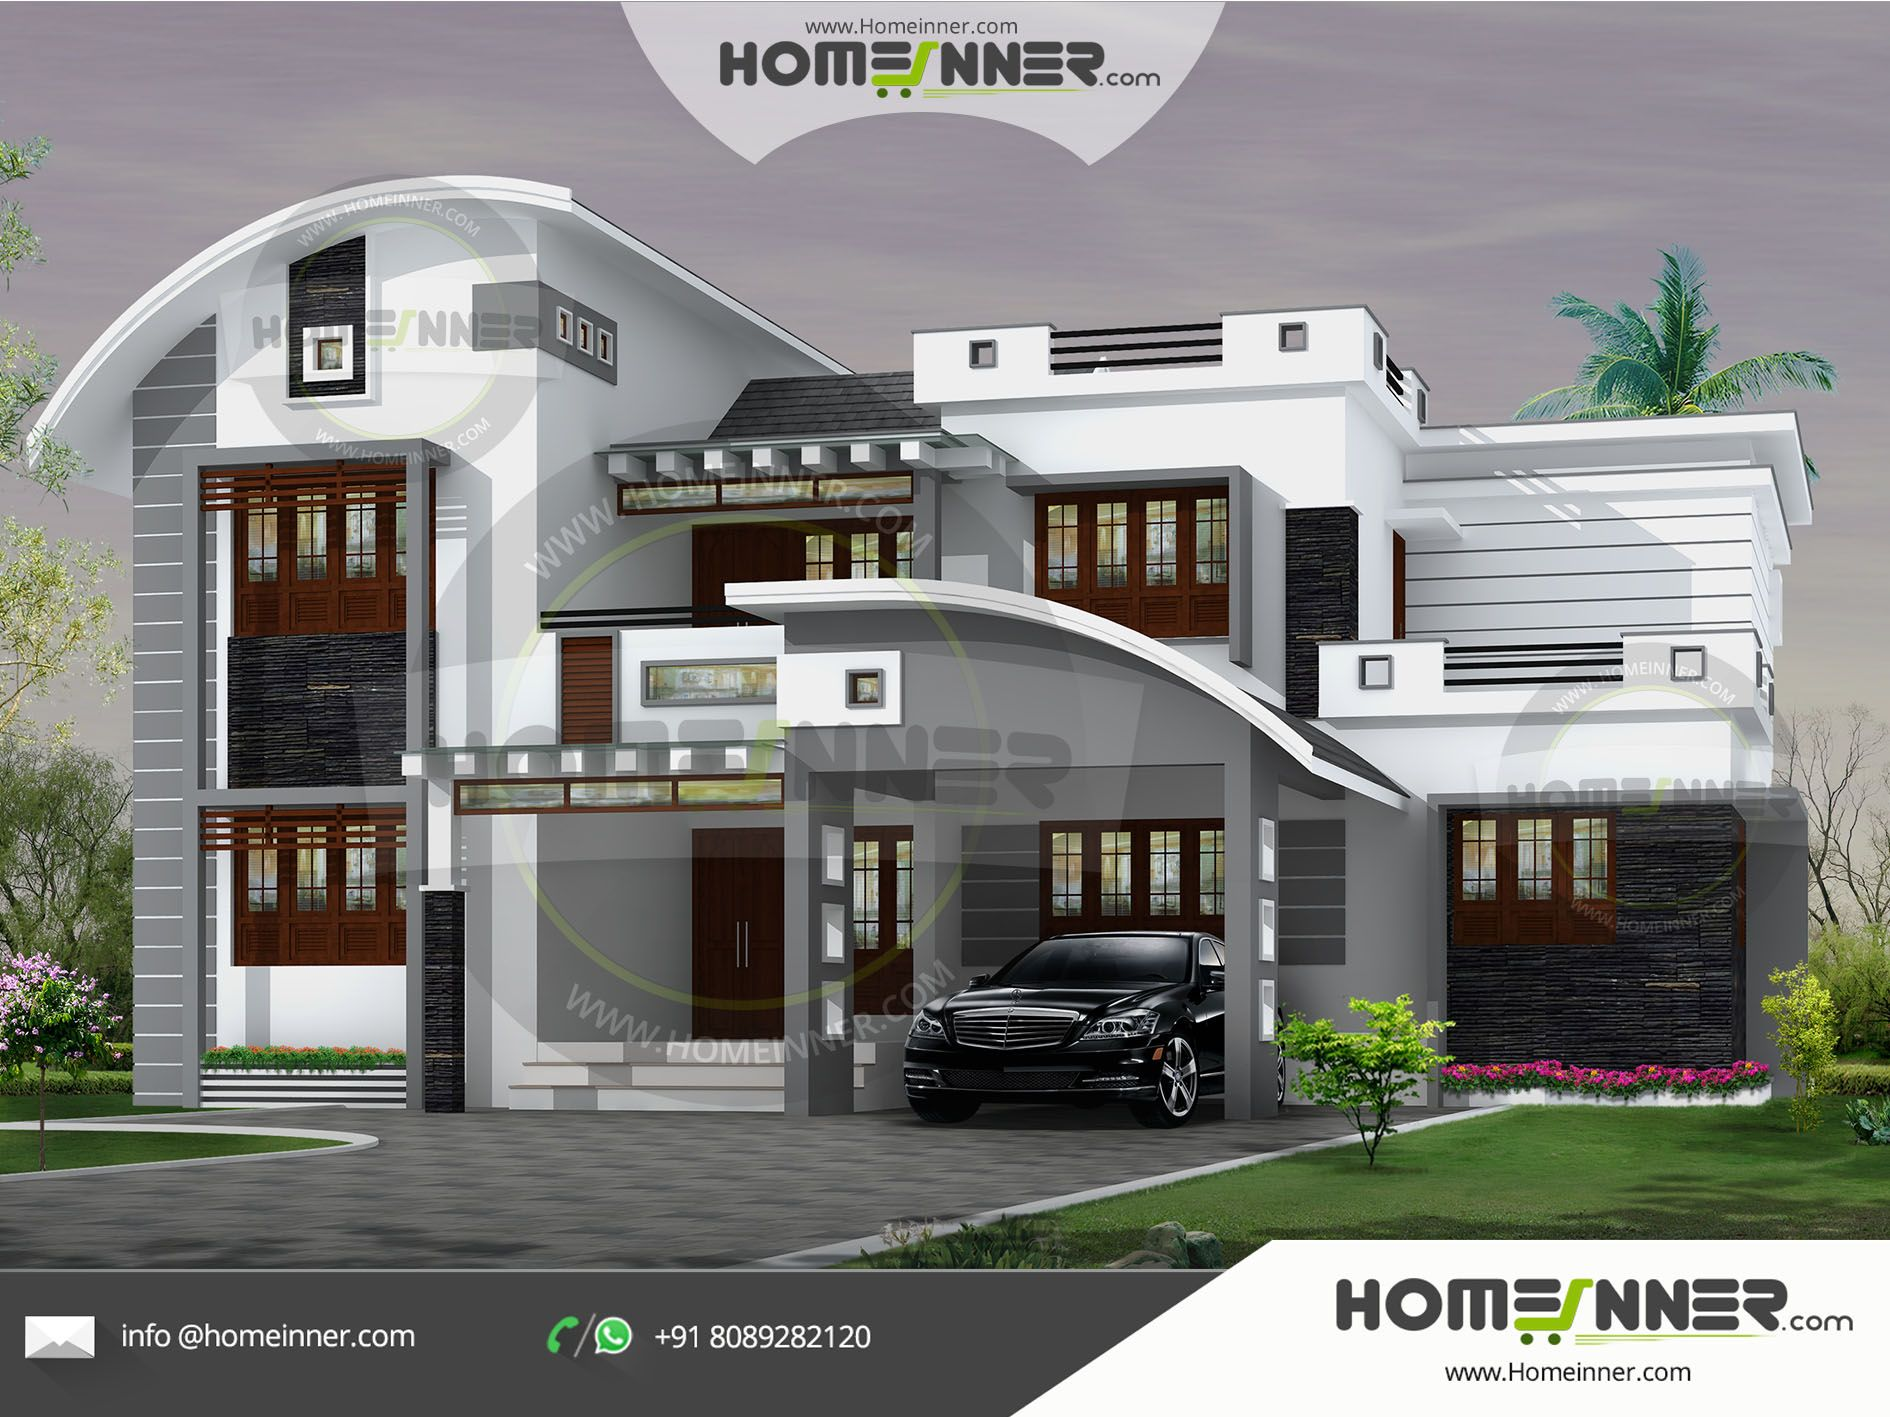 Superior This 2647 Sq Ft 5 Bedroom Modern Calicut Style House Plan ,looking For A  Kozhikodan Style Exterior Design And House Plan For Your Next Dream Then  This Plan ...